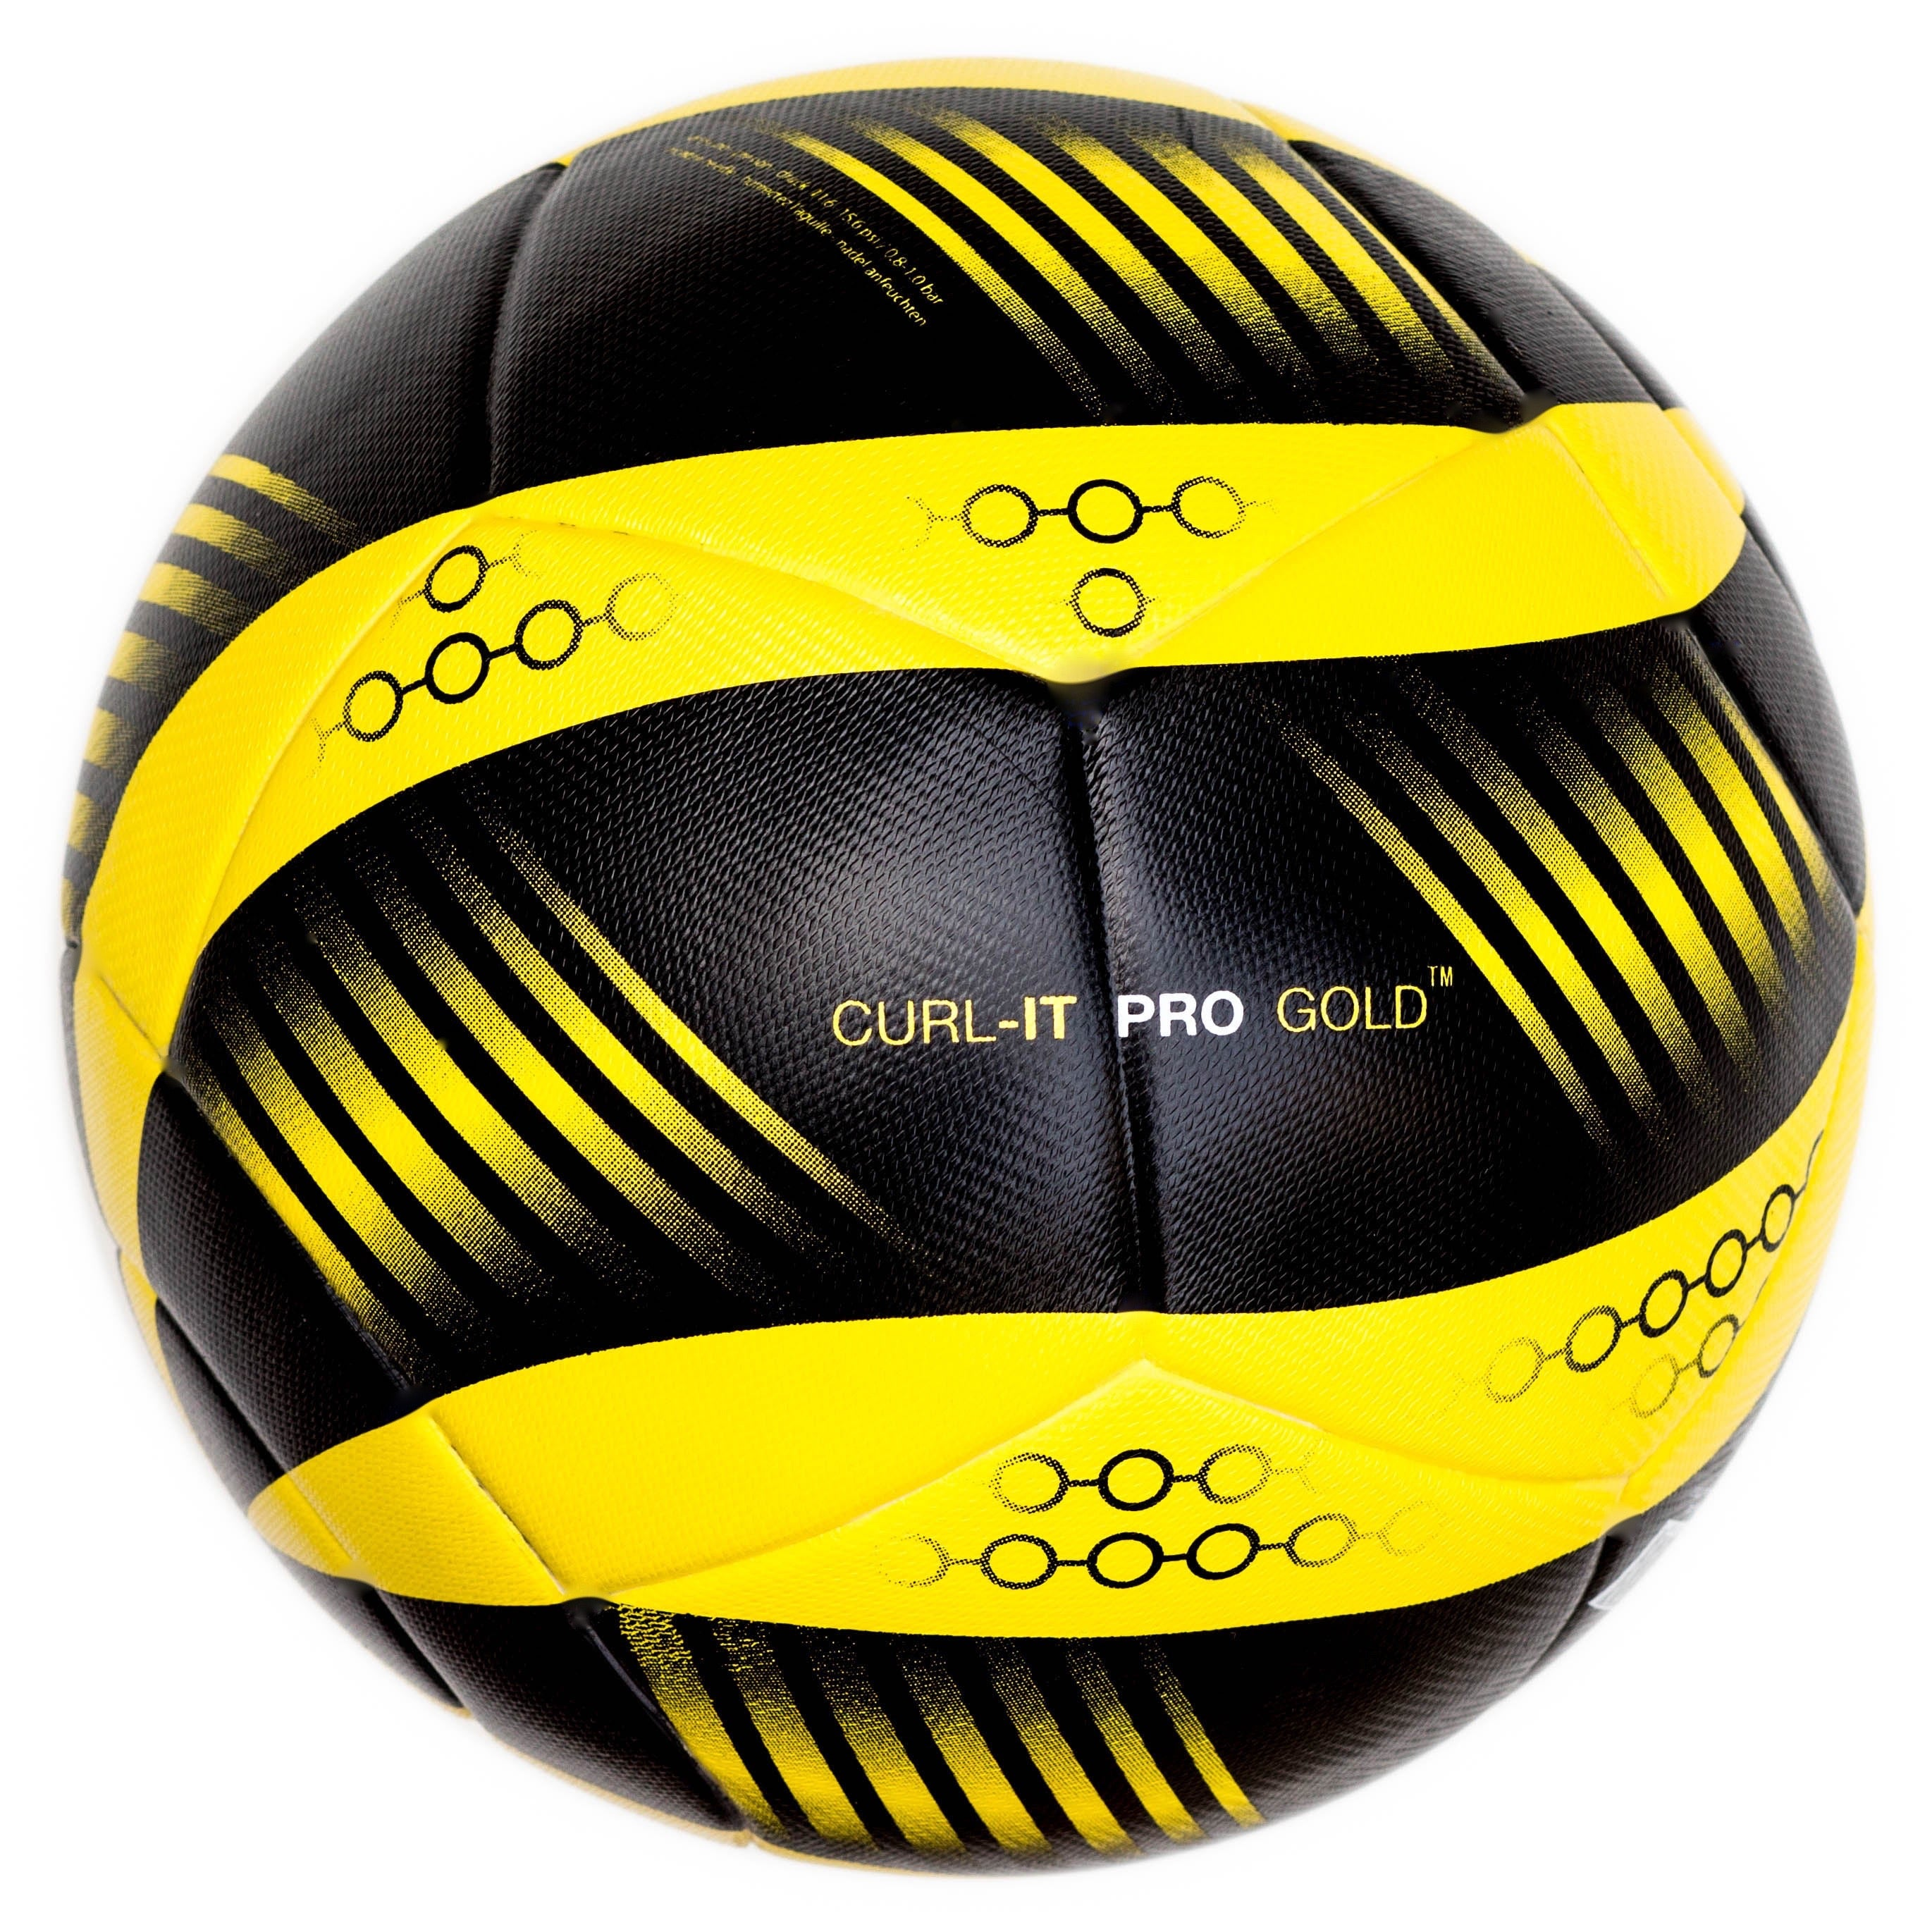 f11153bd95e Bend-It Soccer, Curl-It Pro Gold, Soccer Ball Size 5, Match Ball ...